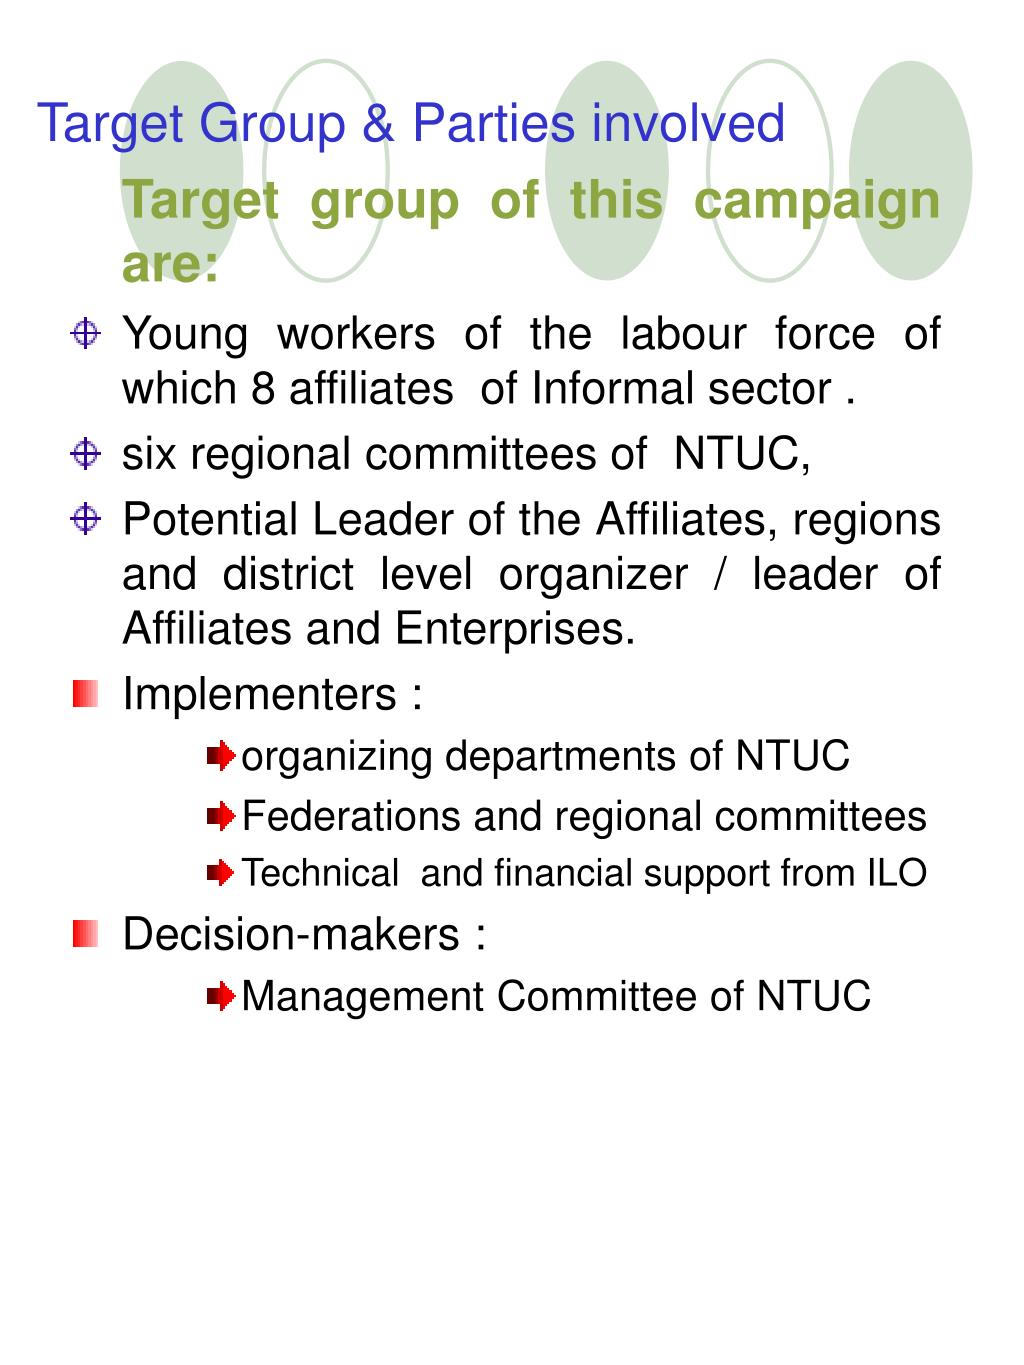 Target Group & Parties involved